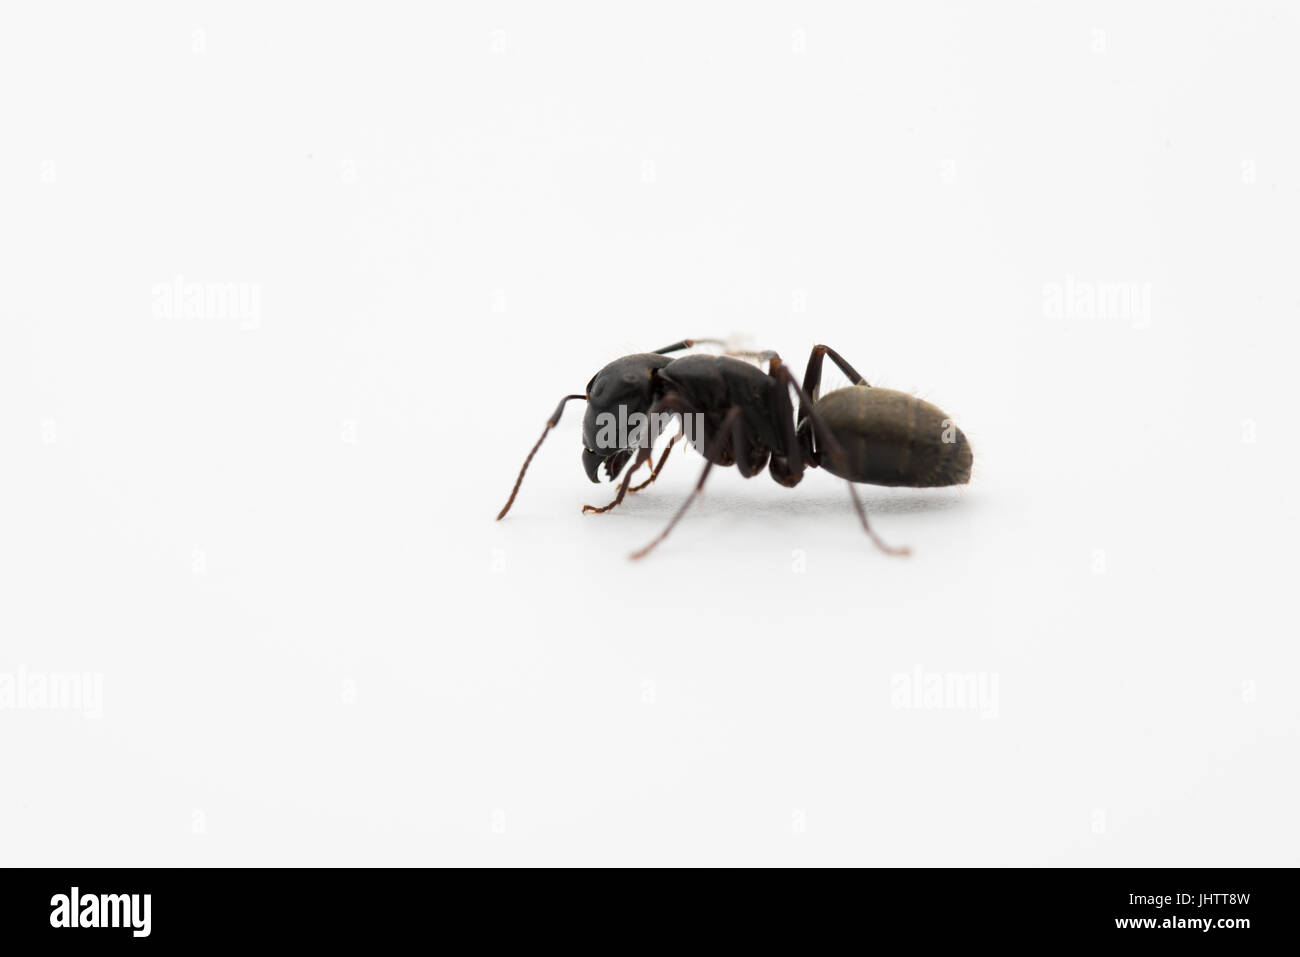 Close up side view of a wingless sterile black female worker ant on white with copy space - Stock Image